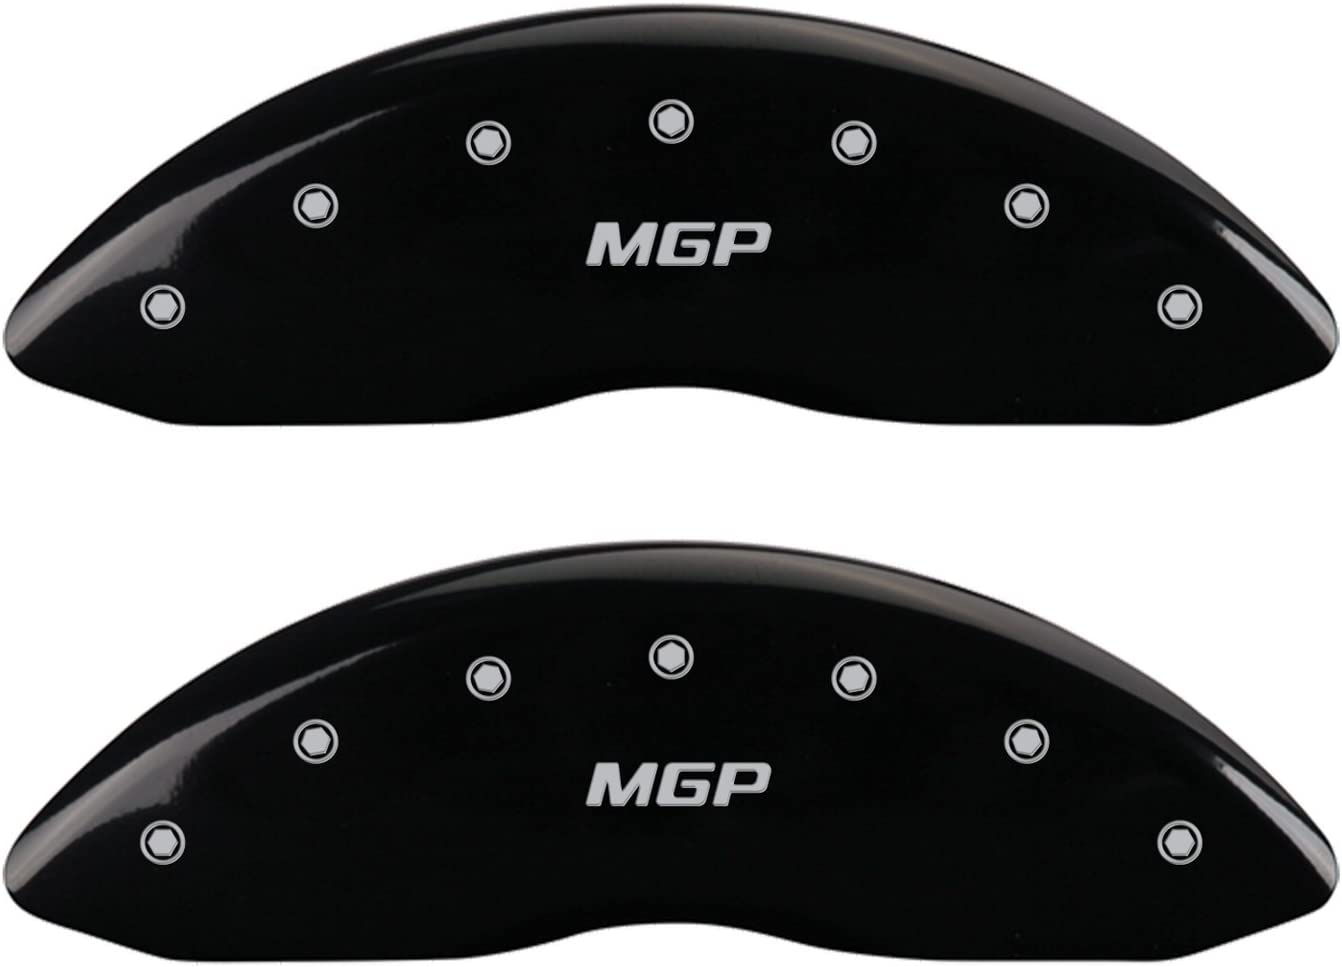 Set of 4 MGP Caliper Covers 22185SMGPBK MGP Engraved Caliper Cover with Black Powder Coat Finish and Silver Characters,